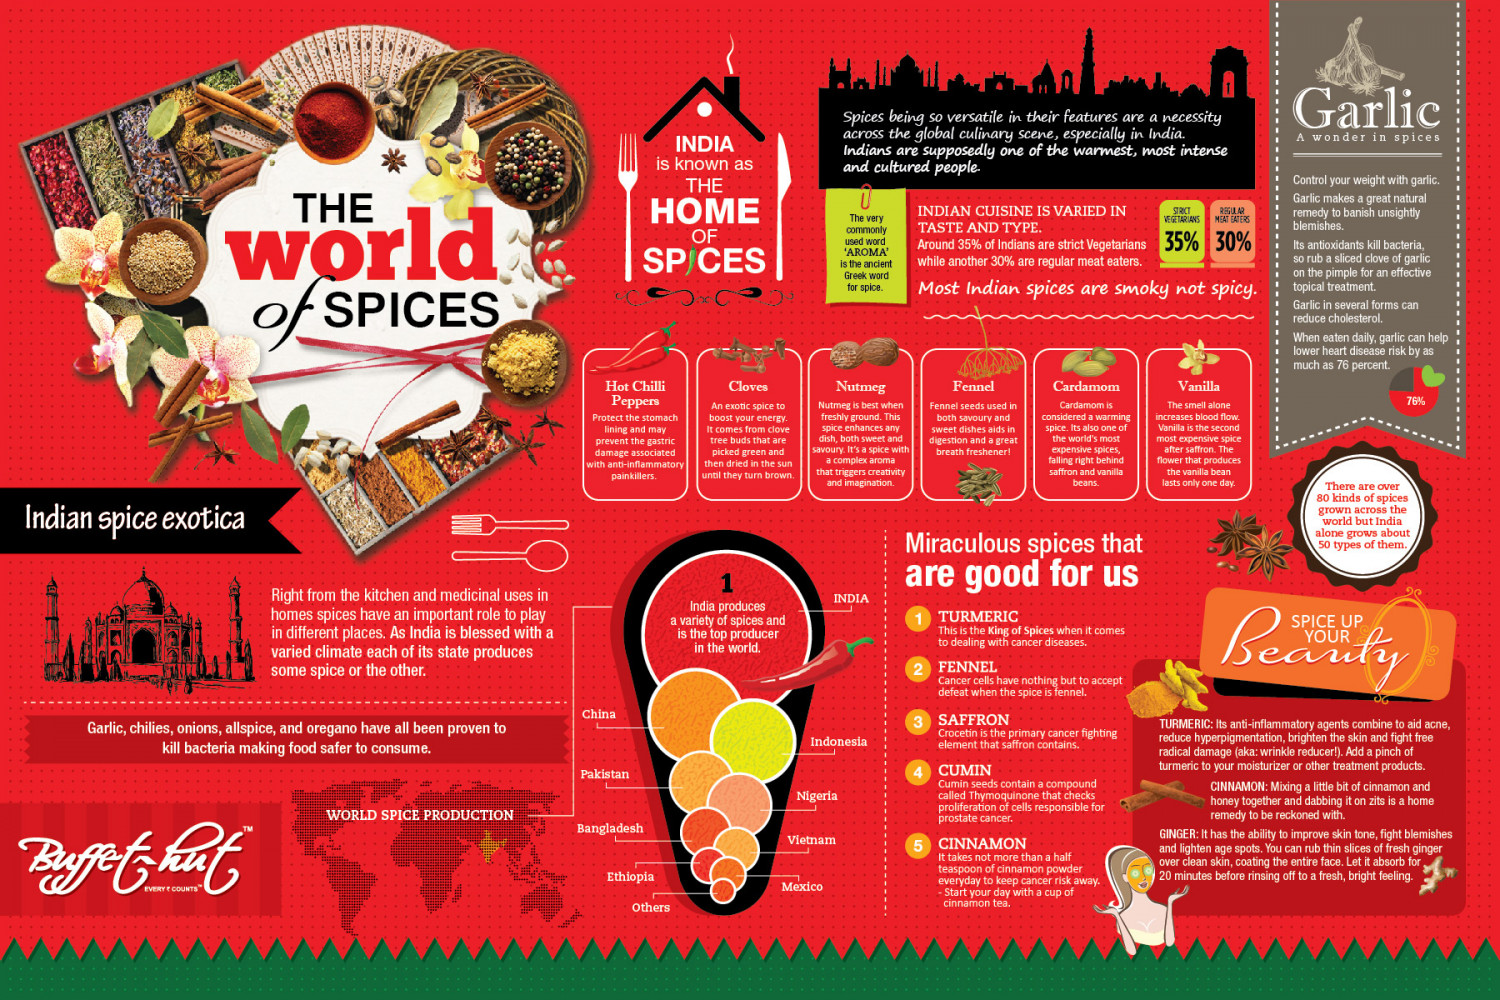 The World of Spices Infographic